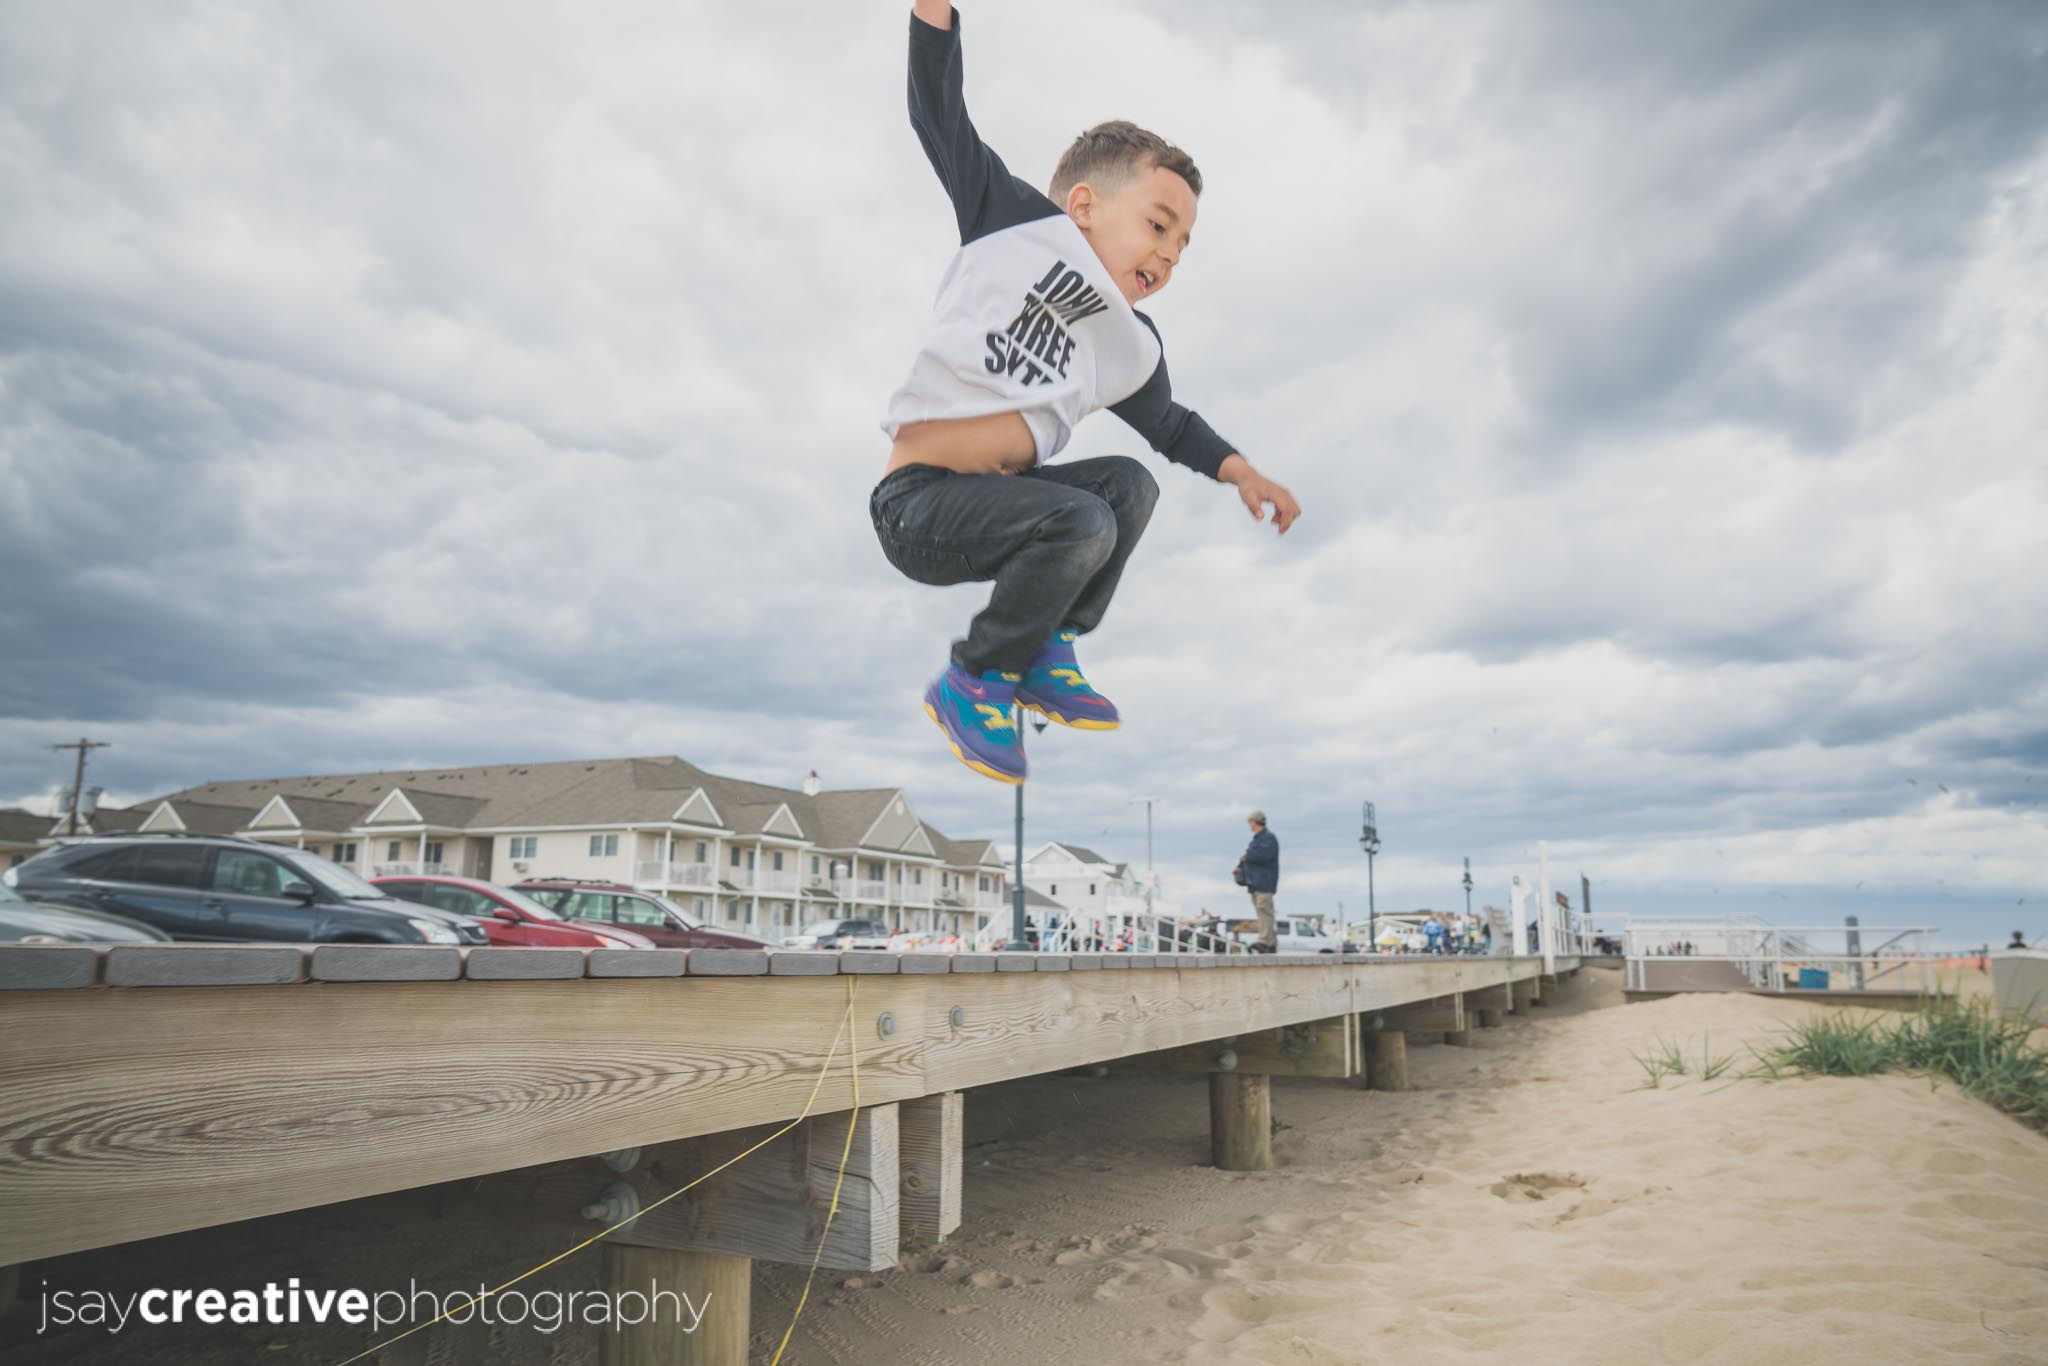 Adorable, Baby, Beach, Beautiful Family, Belmar, Belmar Beach, Boy Jumping Off The Board Walk, Children, Family, Family at Belmar Beach, Family at the Beach, Family at the Jersey Shore, Jersey Shore, New Jersey, Ocean, Son, shore